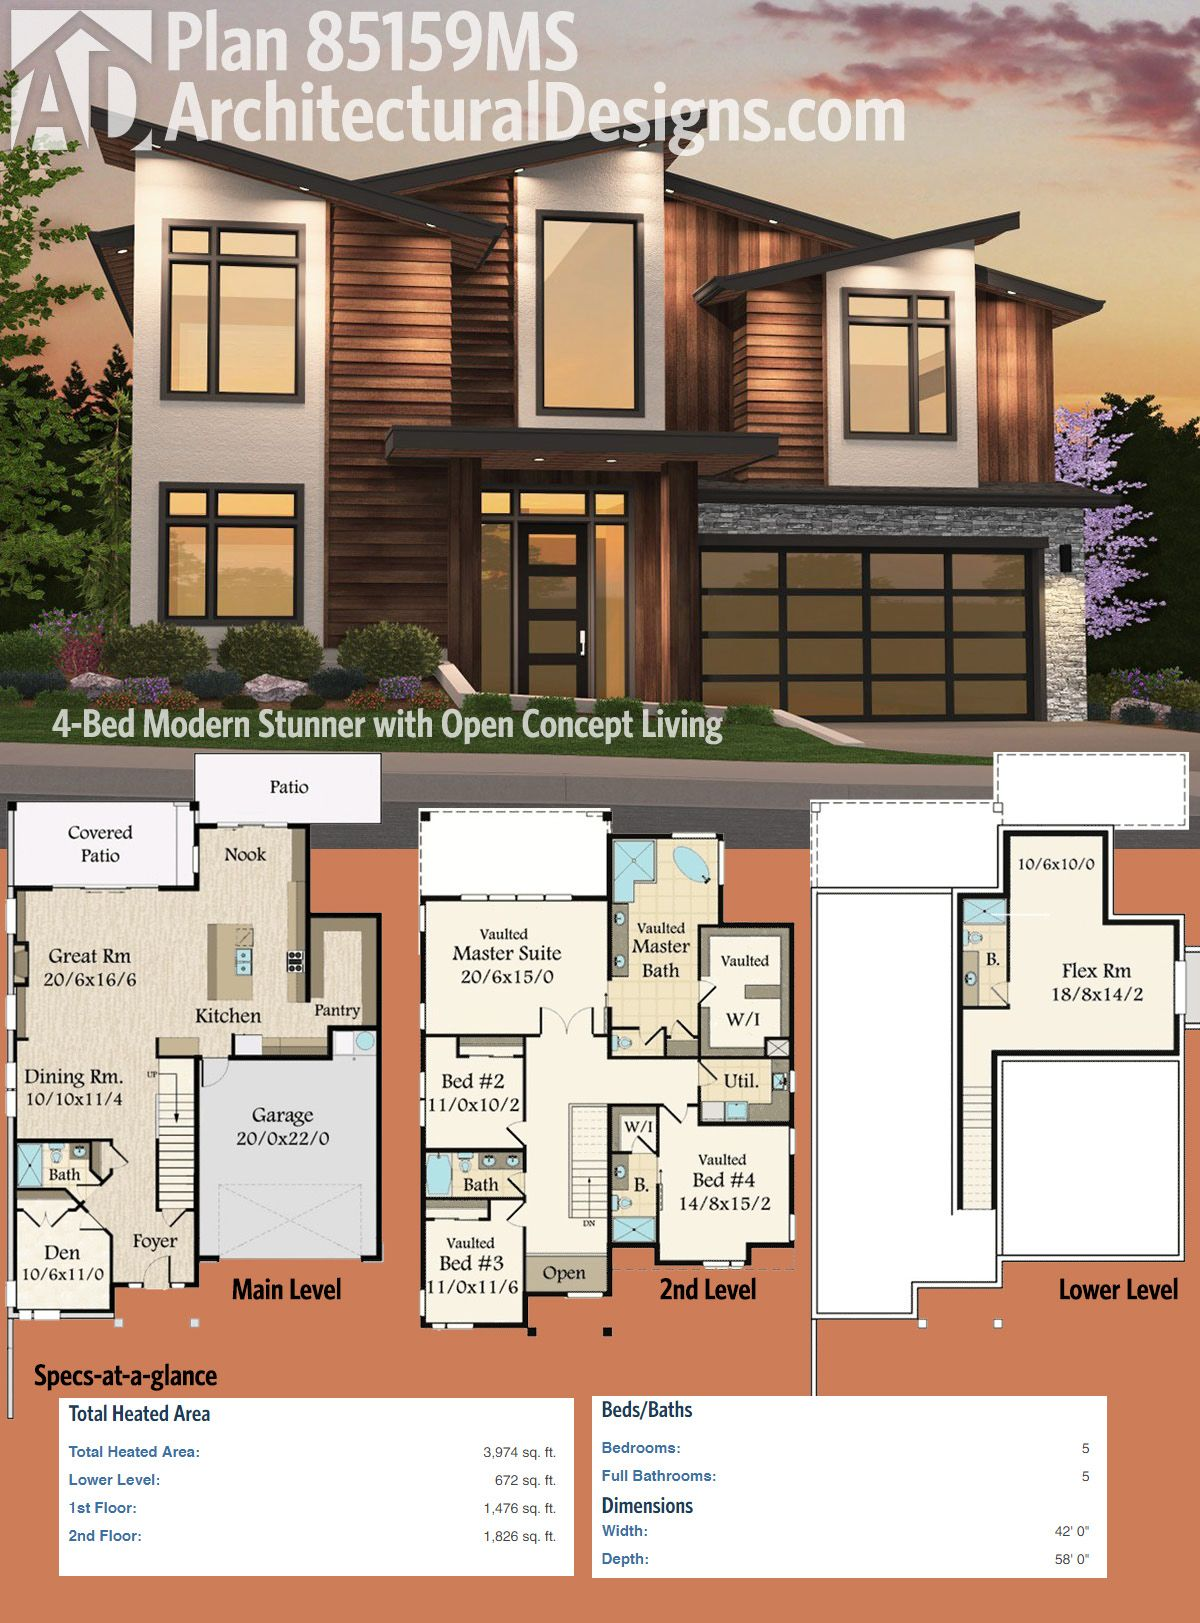 Plan 85159ms 4 Bed Modern Stunner With Lower Level Flex Room Modern House Plans House Plans With Pictures House Plans